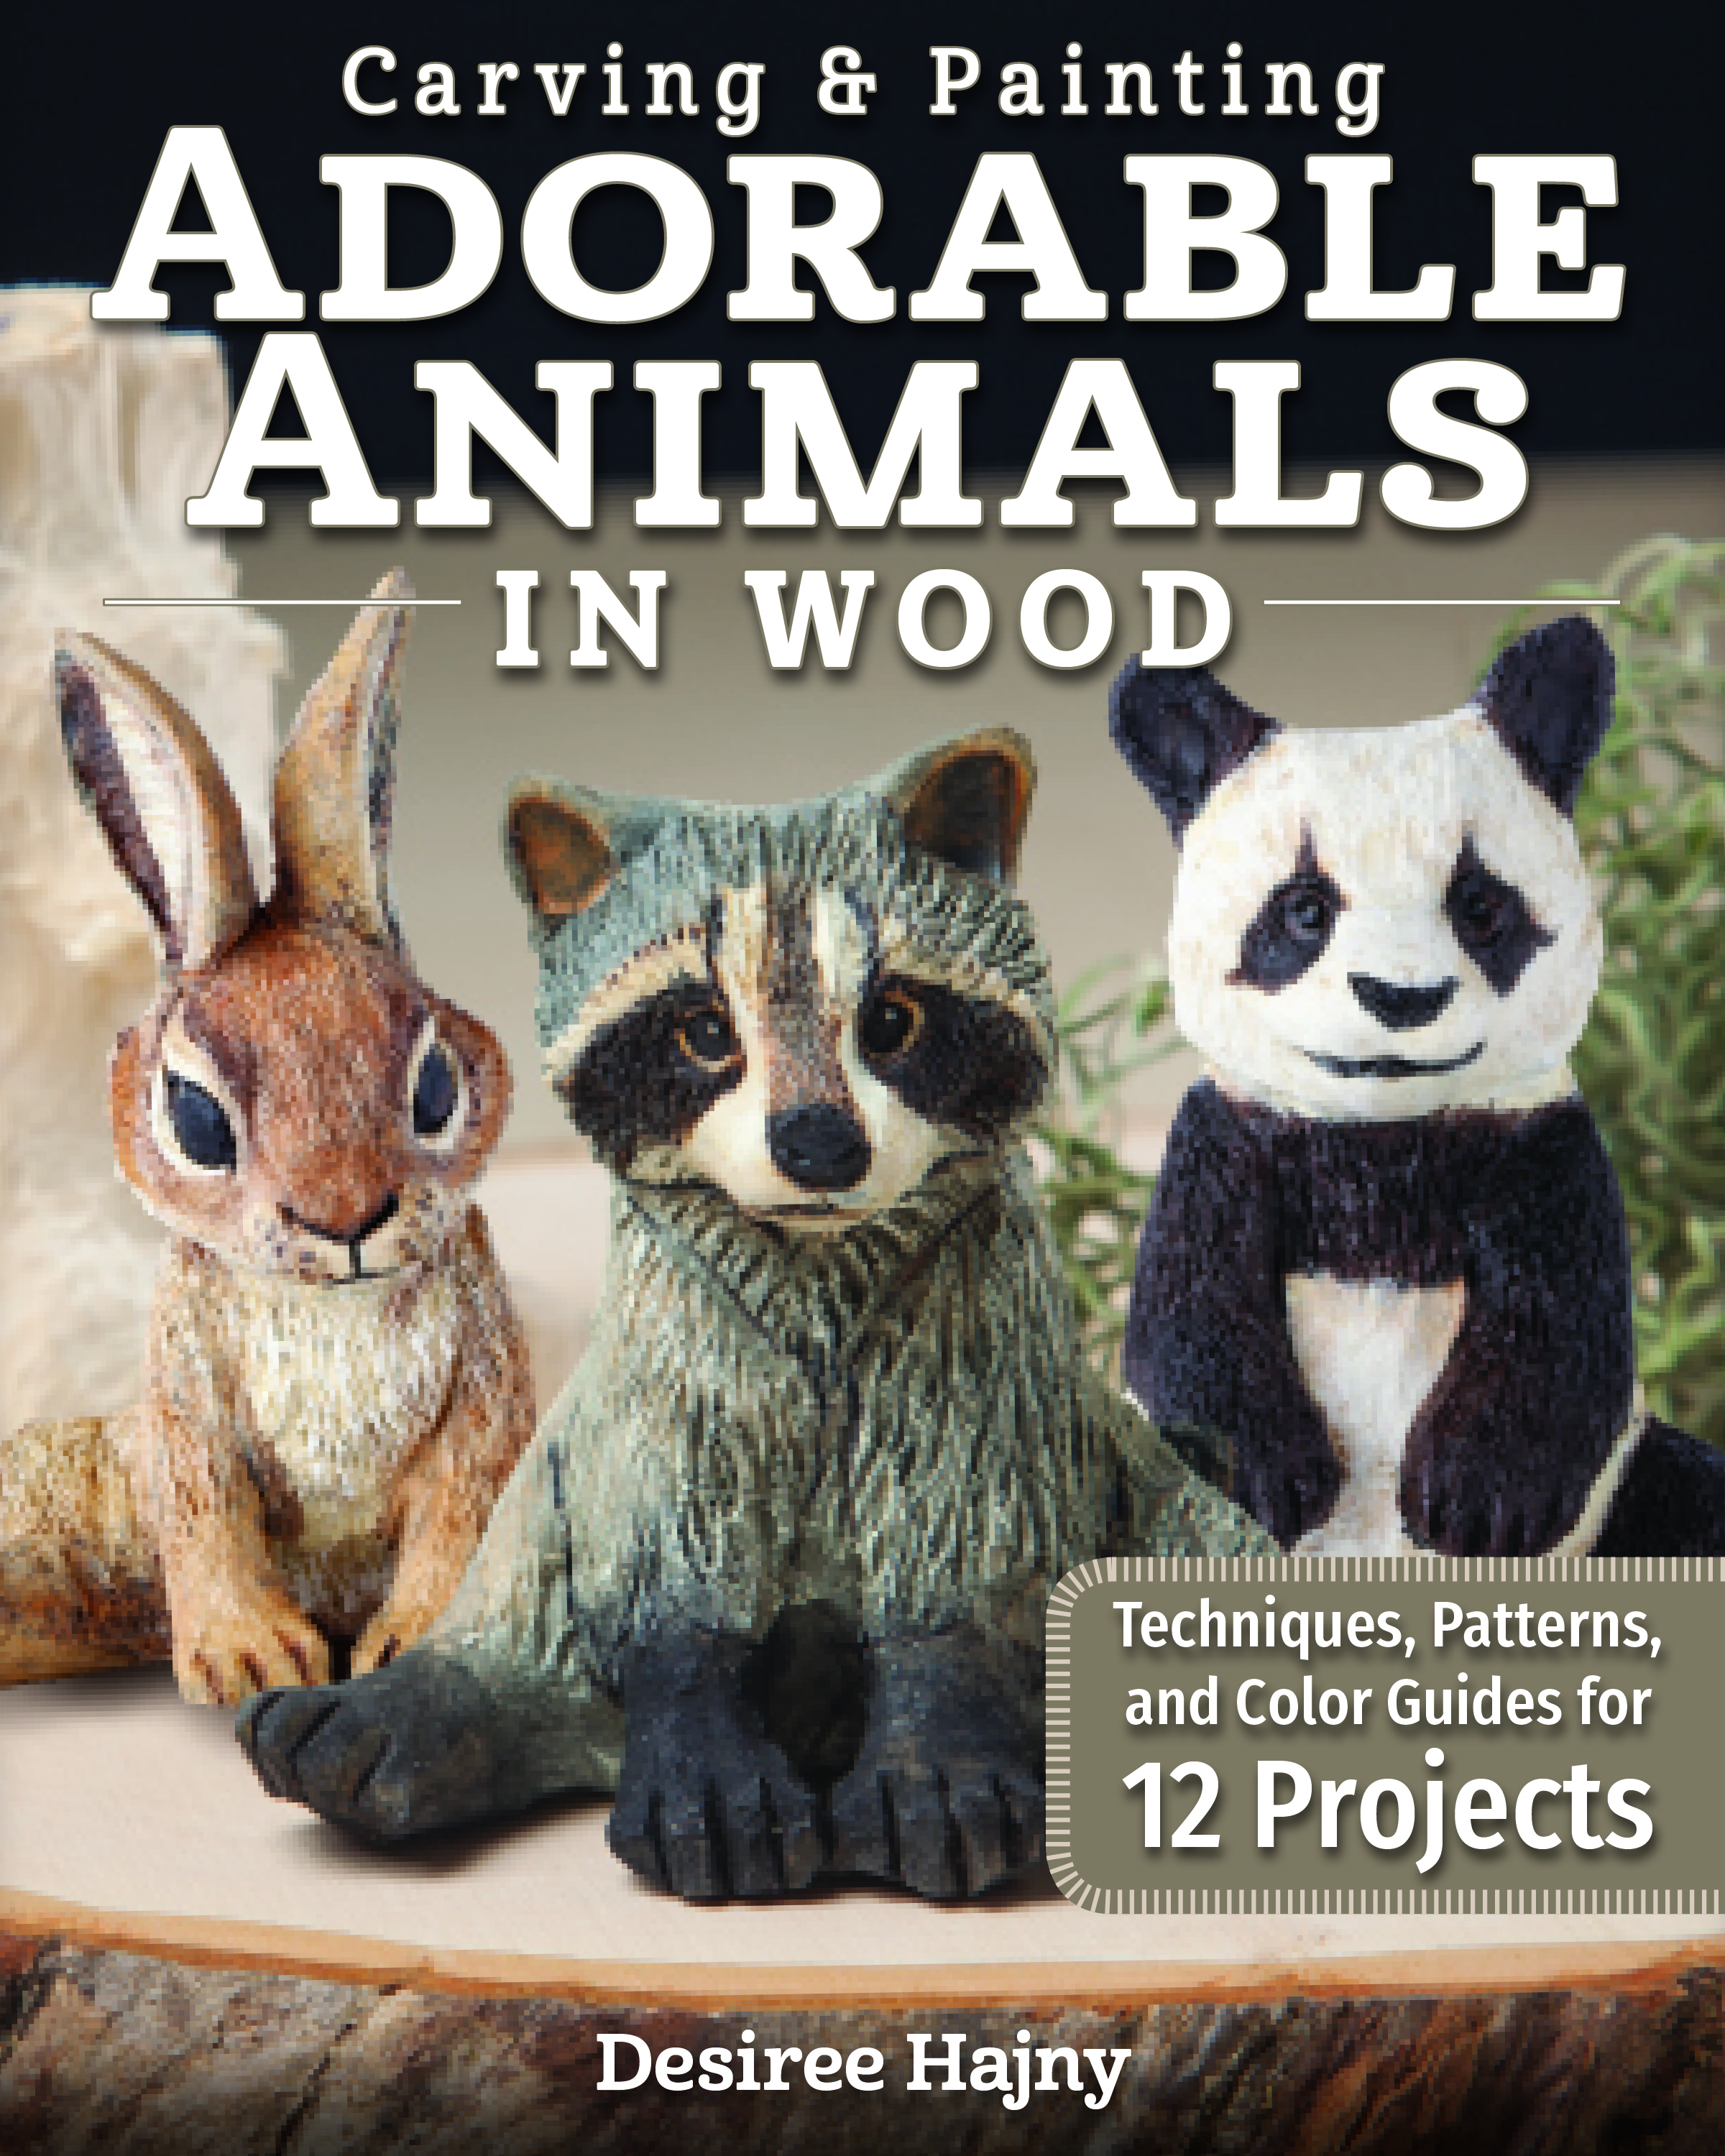 Carving & Painting Adorable Animals in Wood